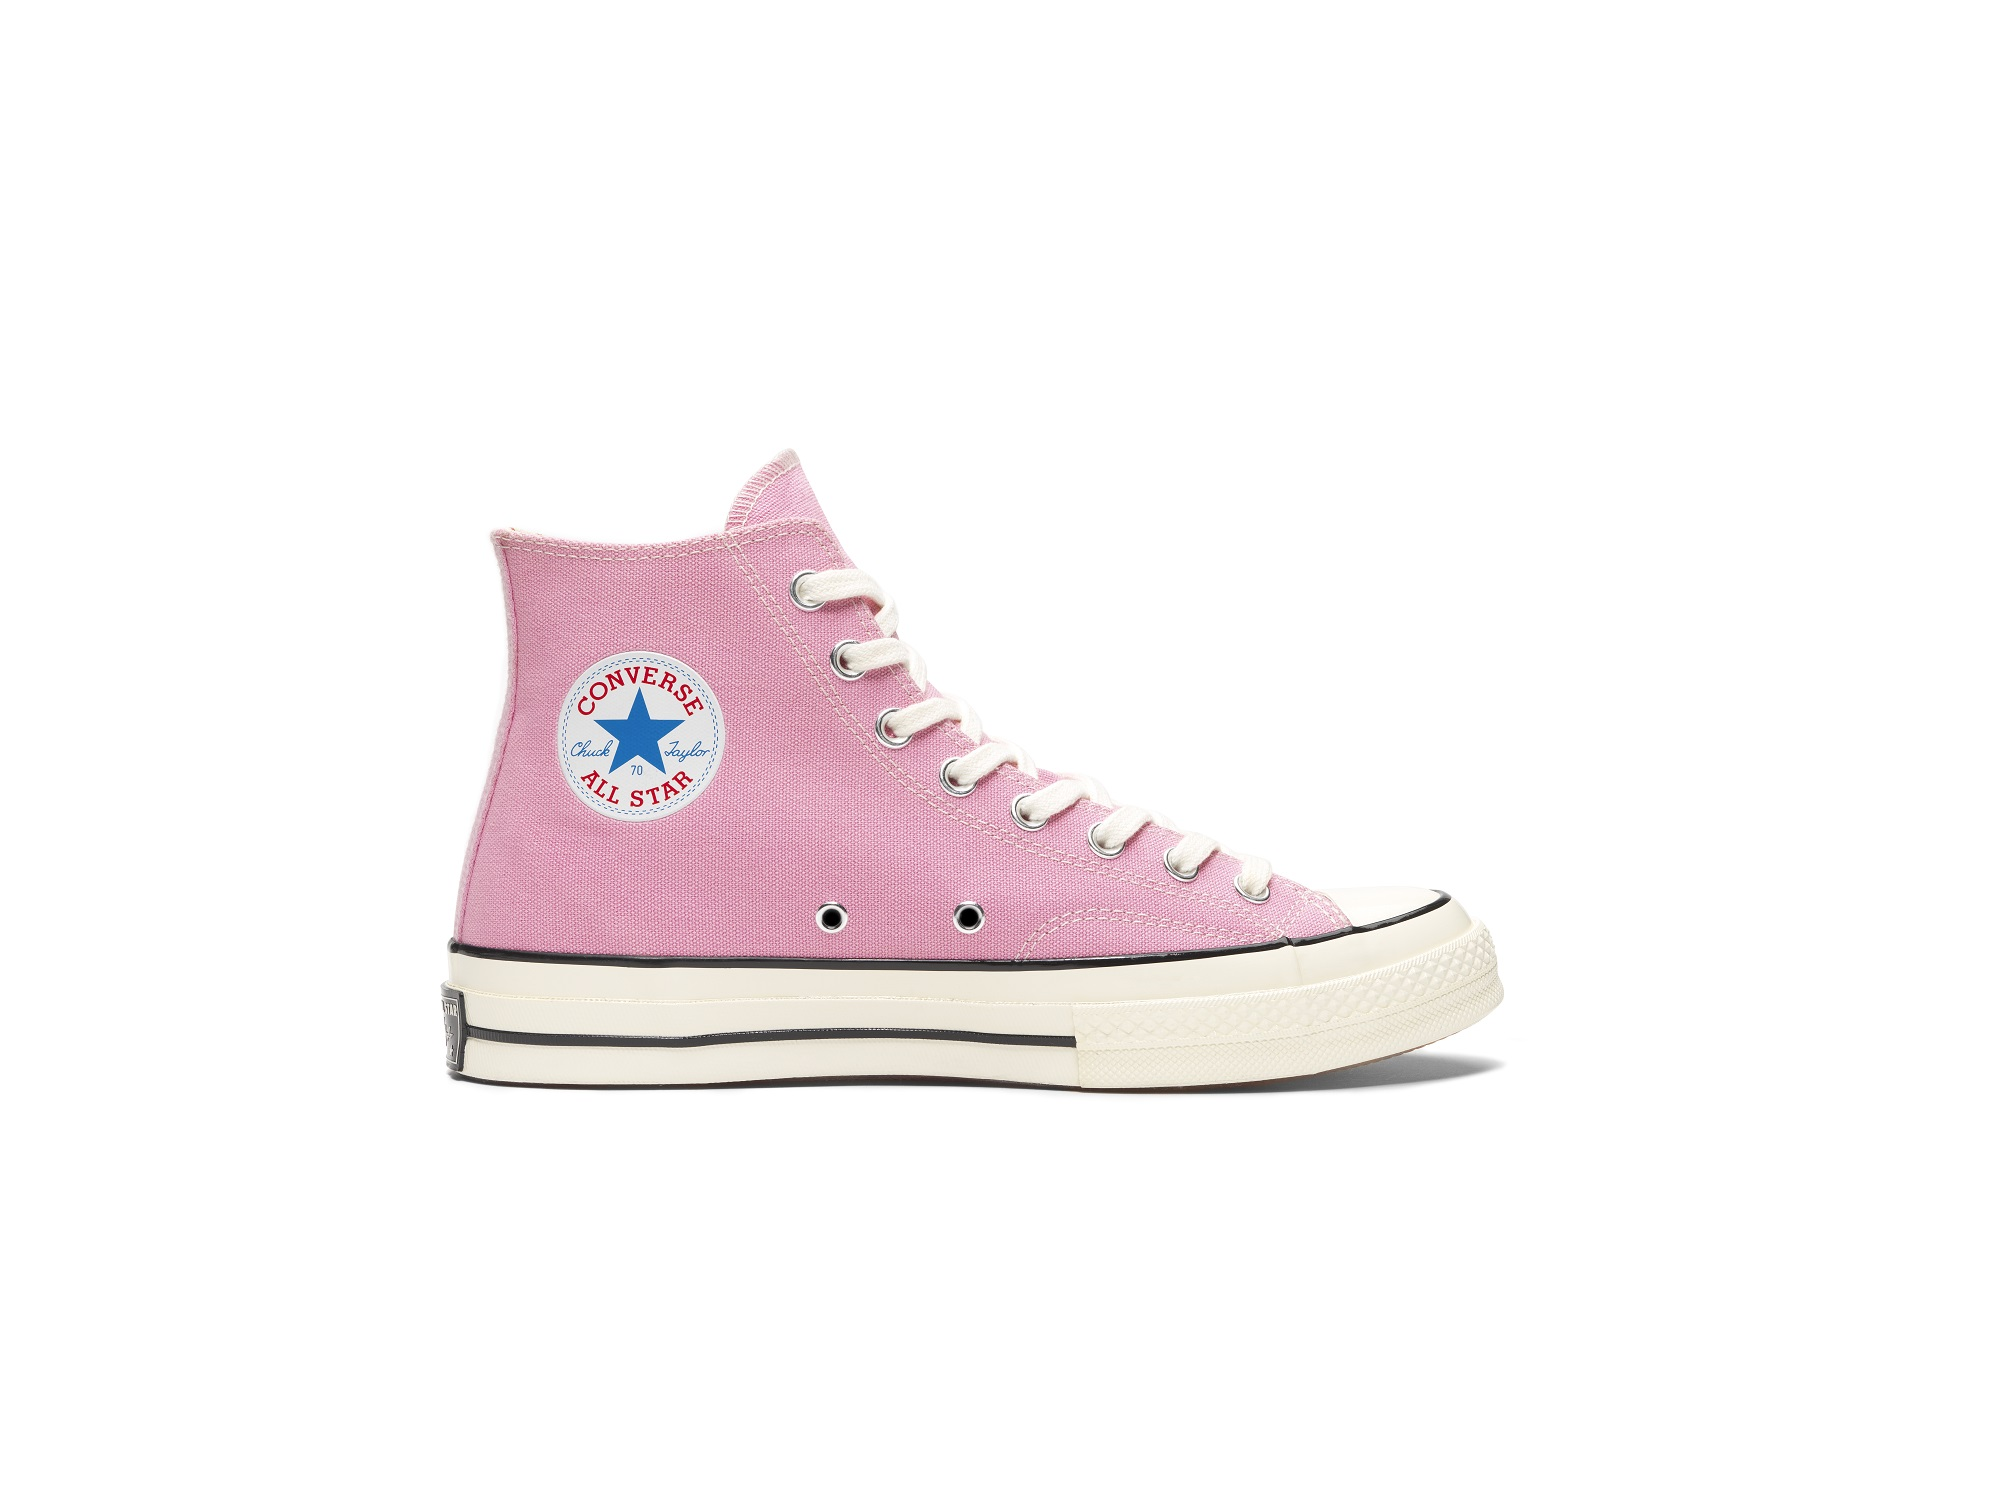 CHUCK 70 HELLO KITTY HI PINK